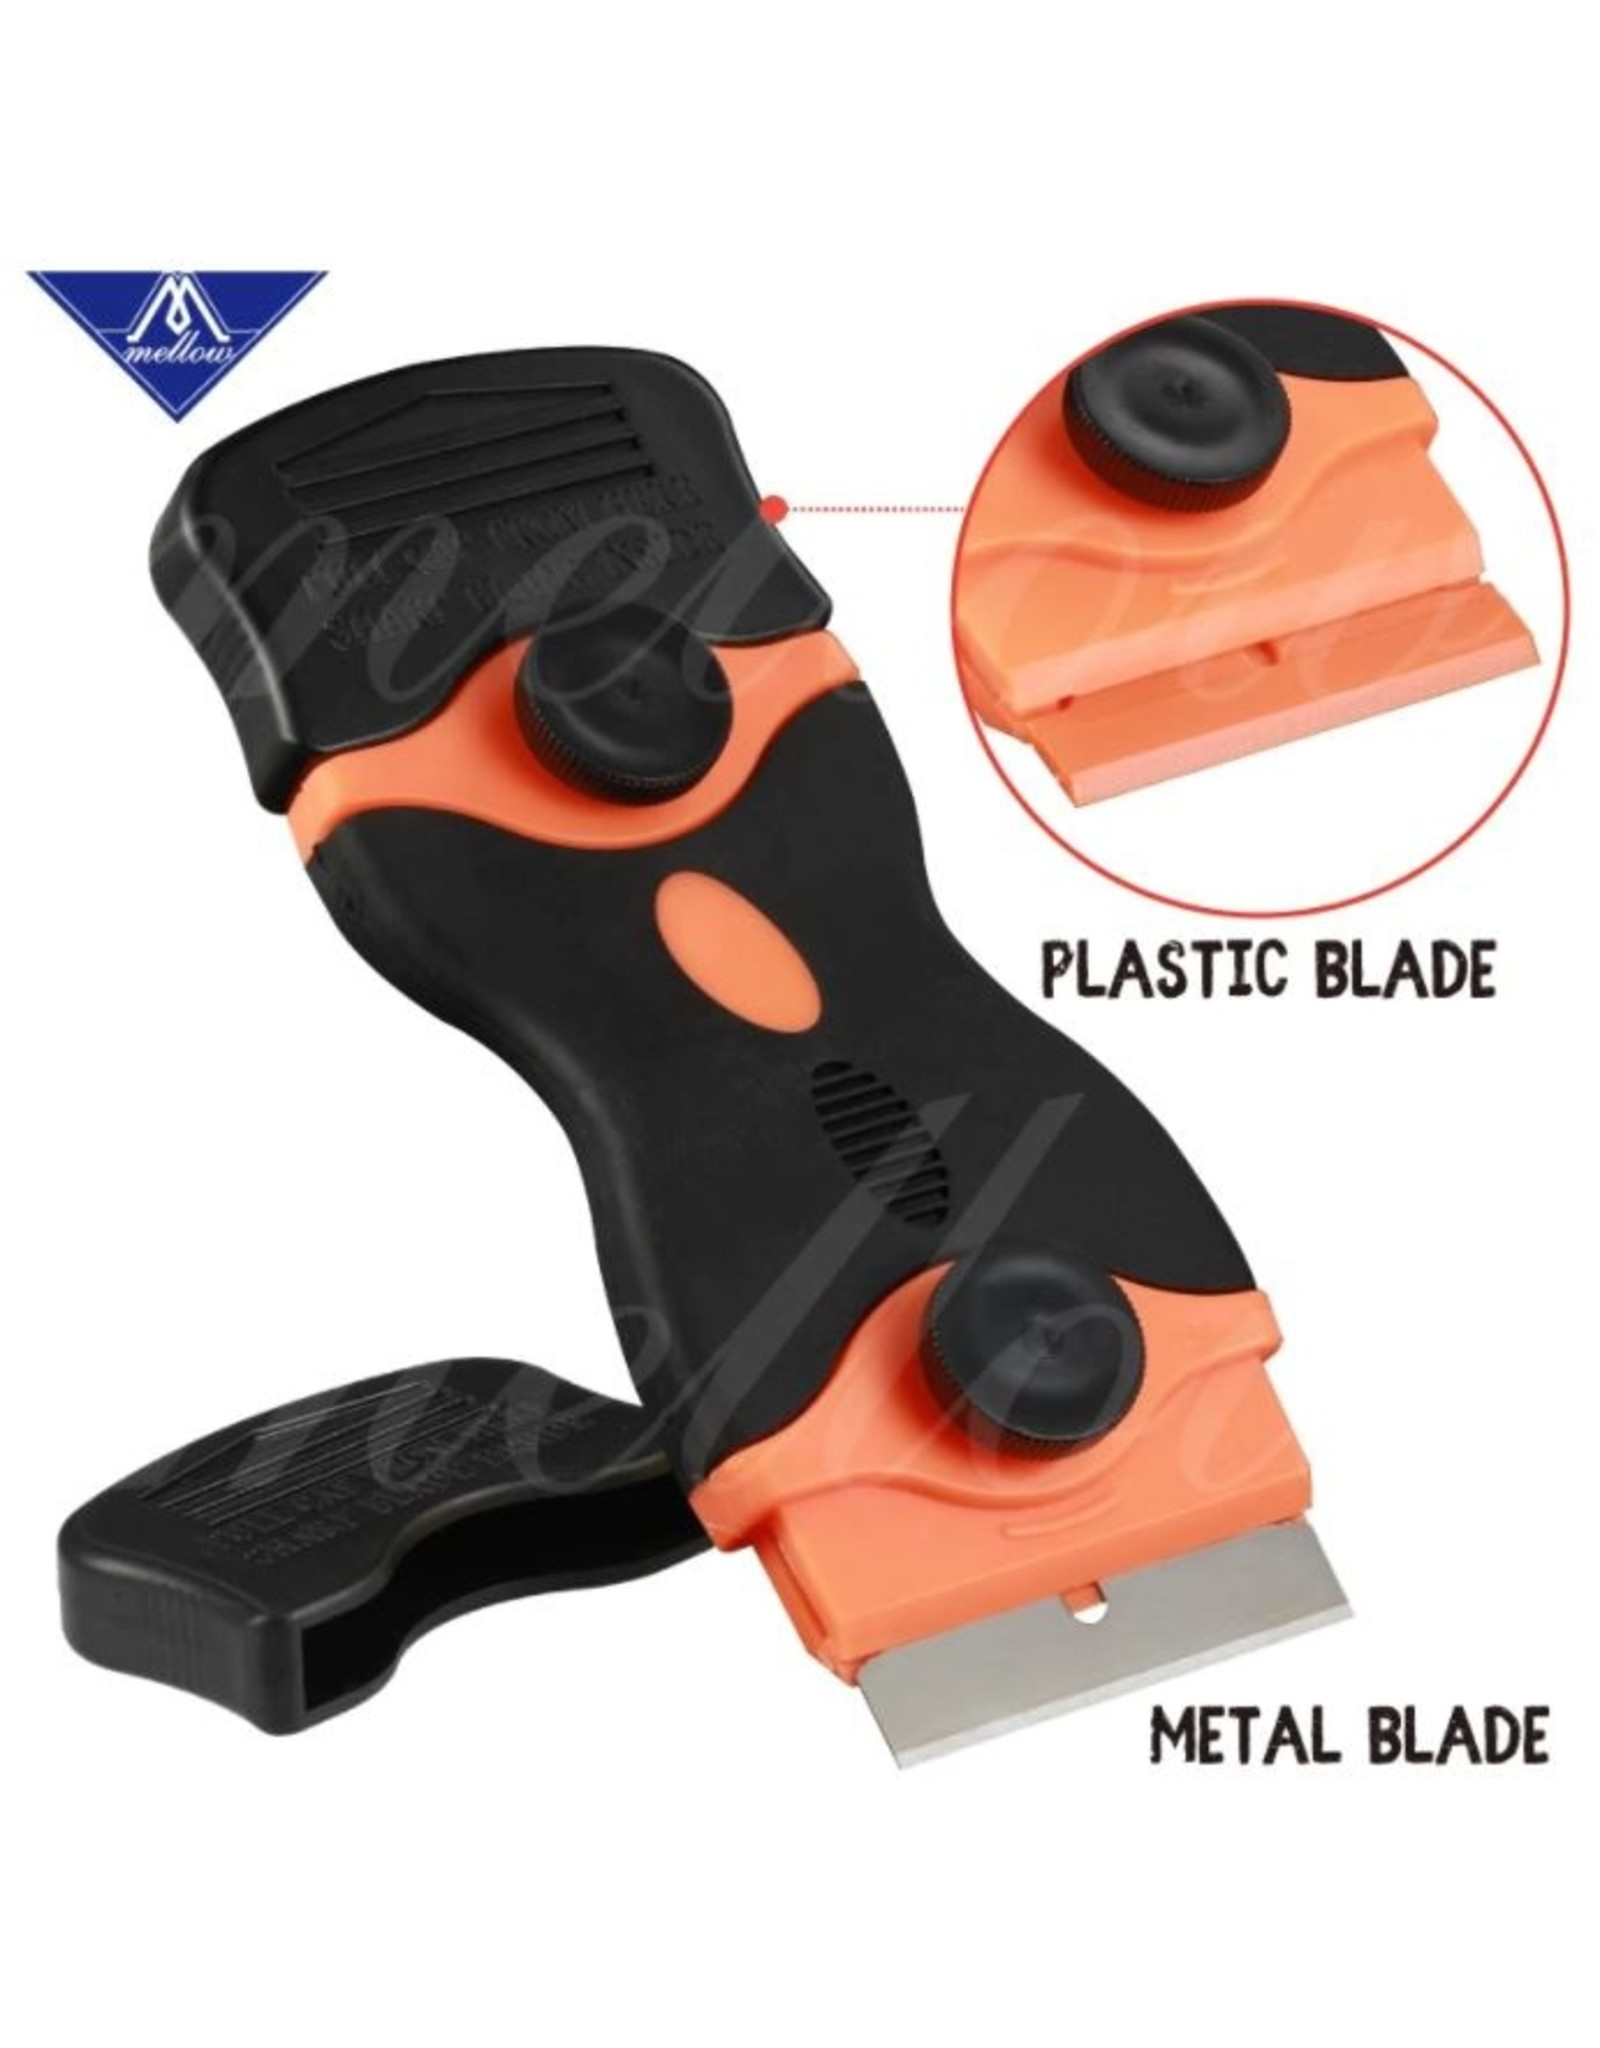 3D In The Box Double bladed scraper - Metal or Plastic